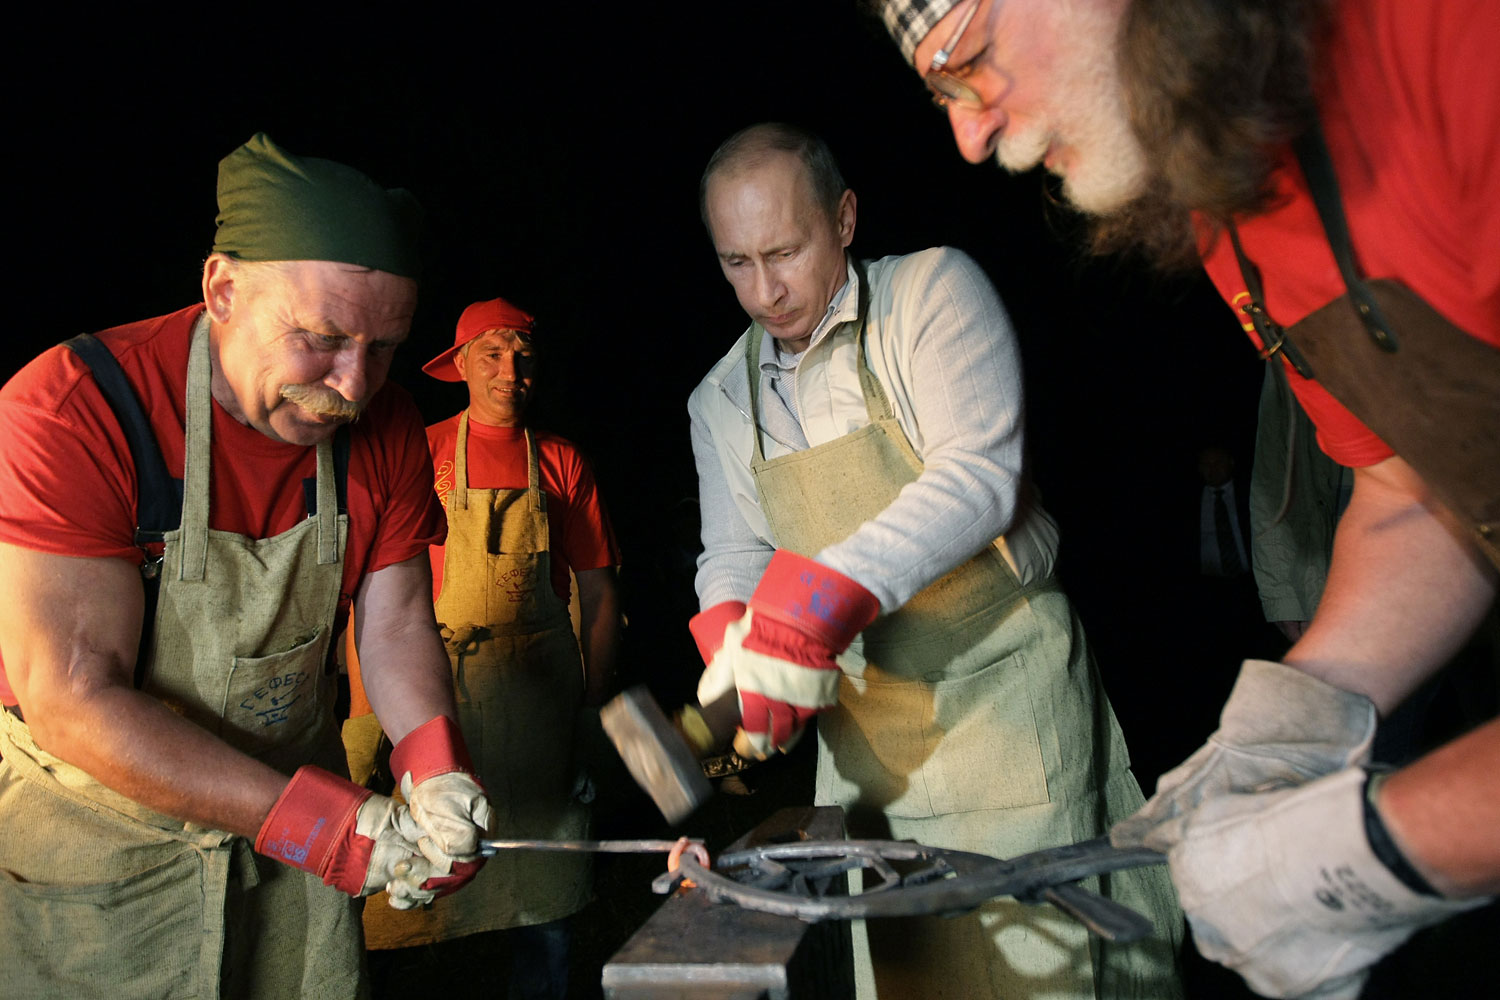 Earlier in the trip, Putin visited the Architecture and Ethnography Museum in Irkutsk, where he worked with a pair of blacksmiths, Aug. 1, 2009.